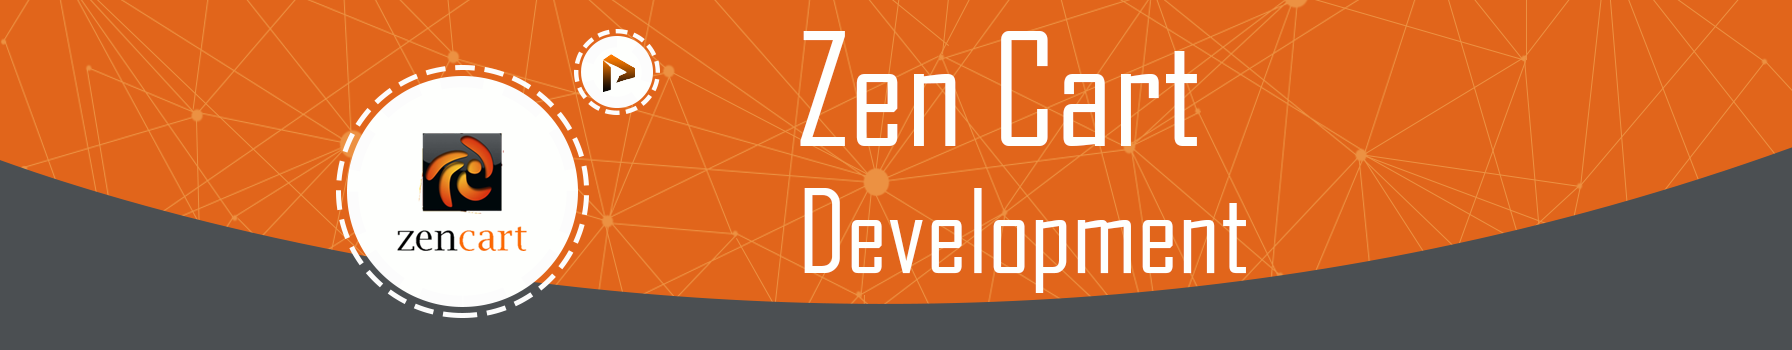 zen-cart-development.png